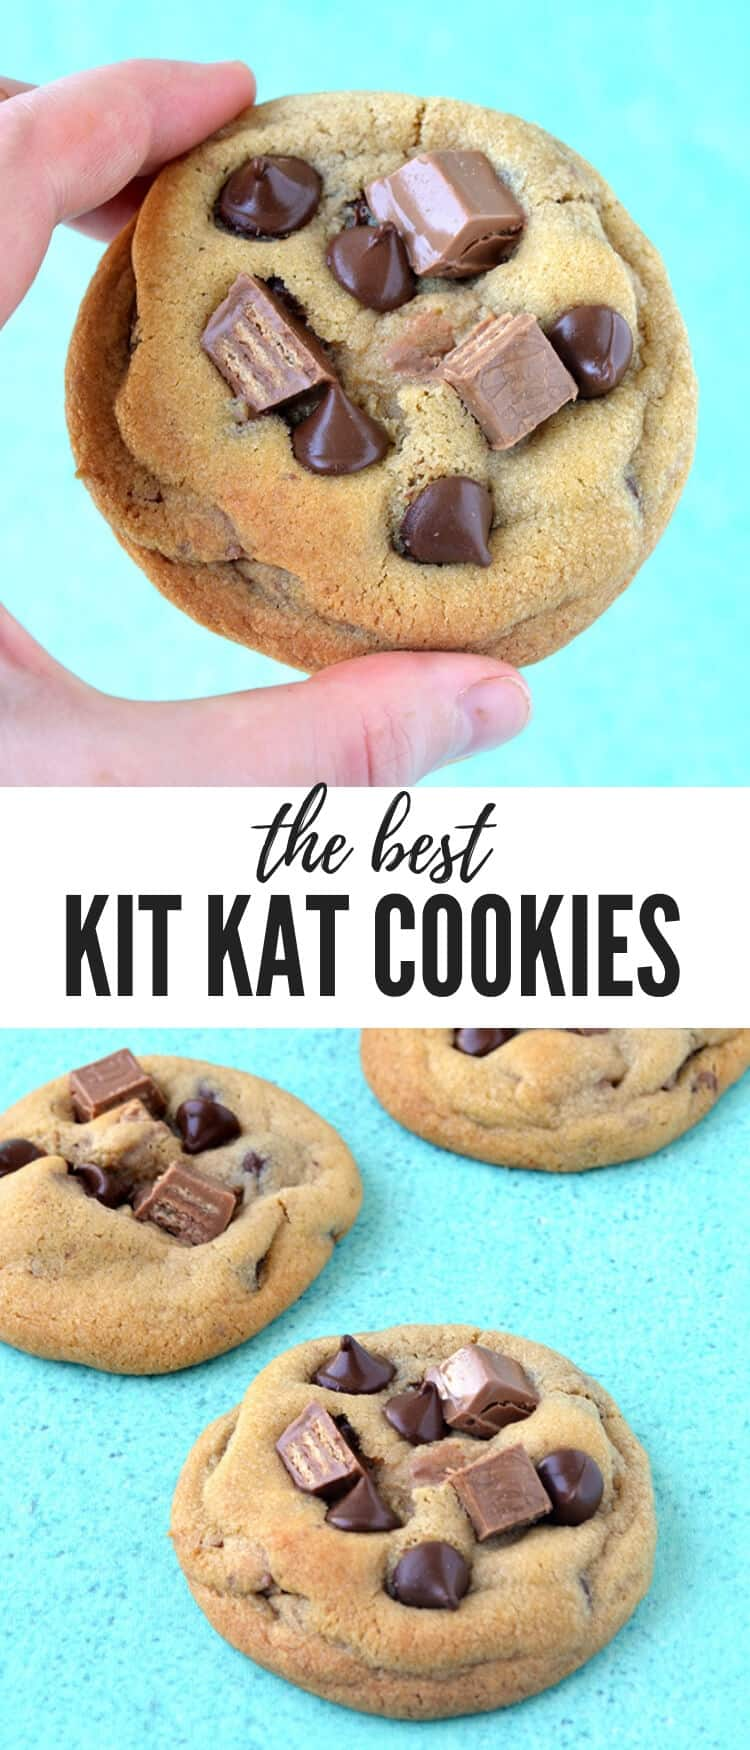 Soft and chewy Kit Kat Chocolate Chip Cookies filled to the brim with Kit Kat candy. These buttery cookies are made with melted butter so they come together using just a bowl and a spoon. Recipe from sweetestmenu.com #cookies #kitkats #chocolate #dessert